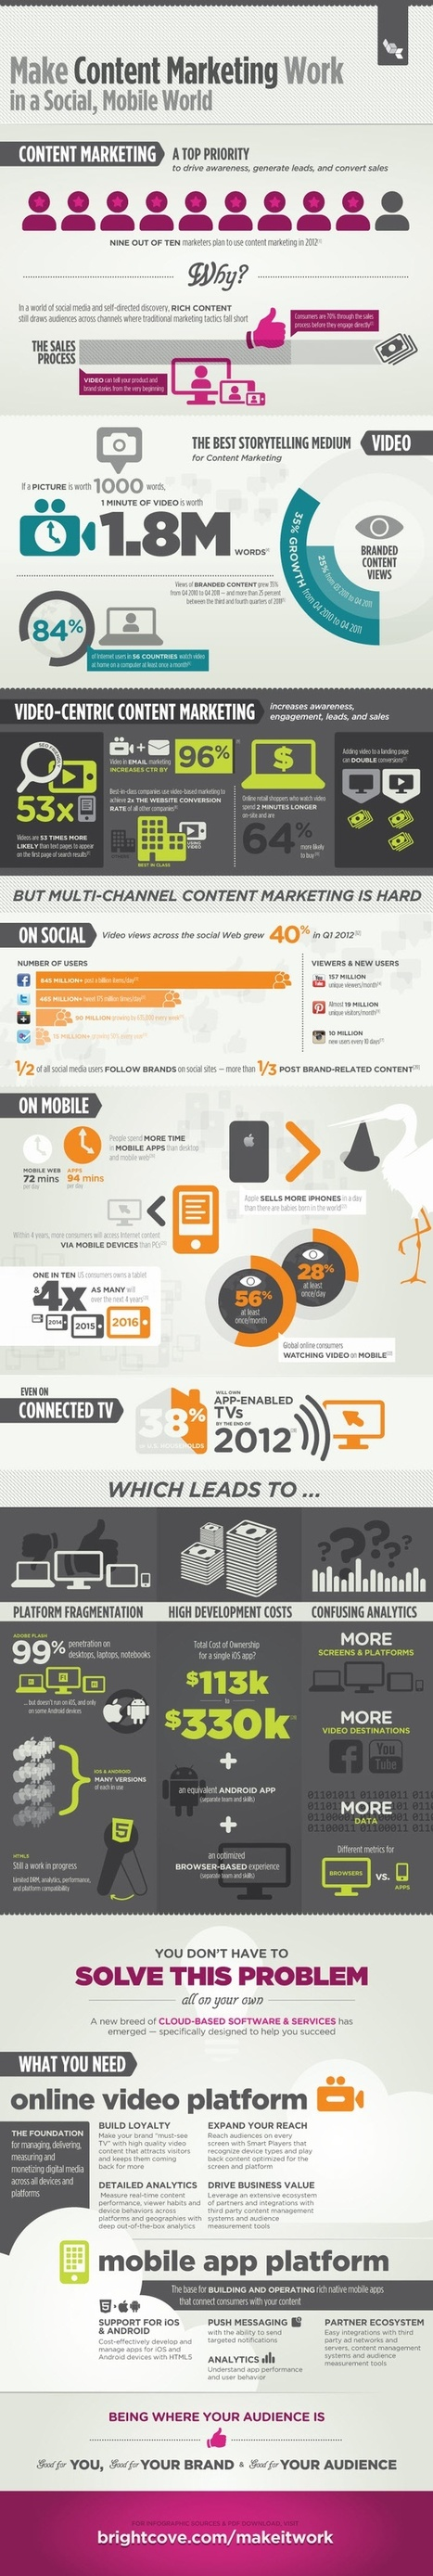 Making #ContentMarketing Work in a Social/Mobile World [Infographic] | Social Media, Communications and Creativity | Scoop.it